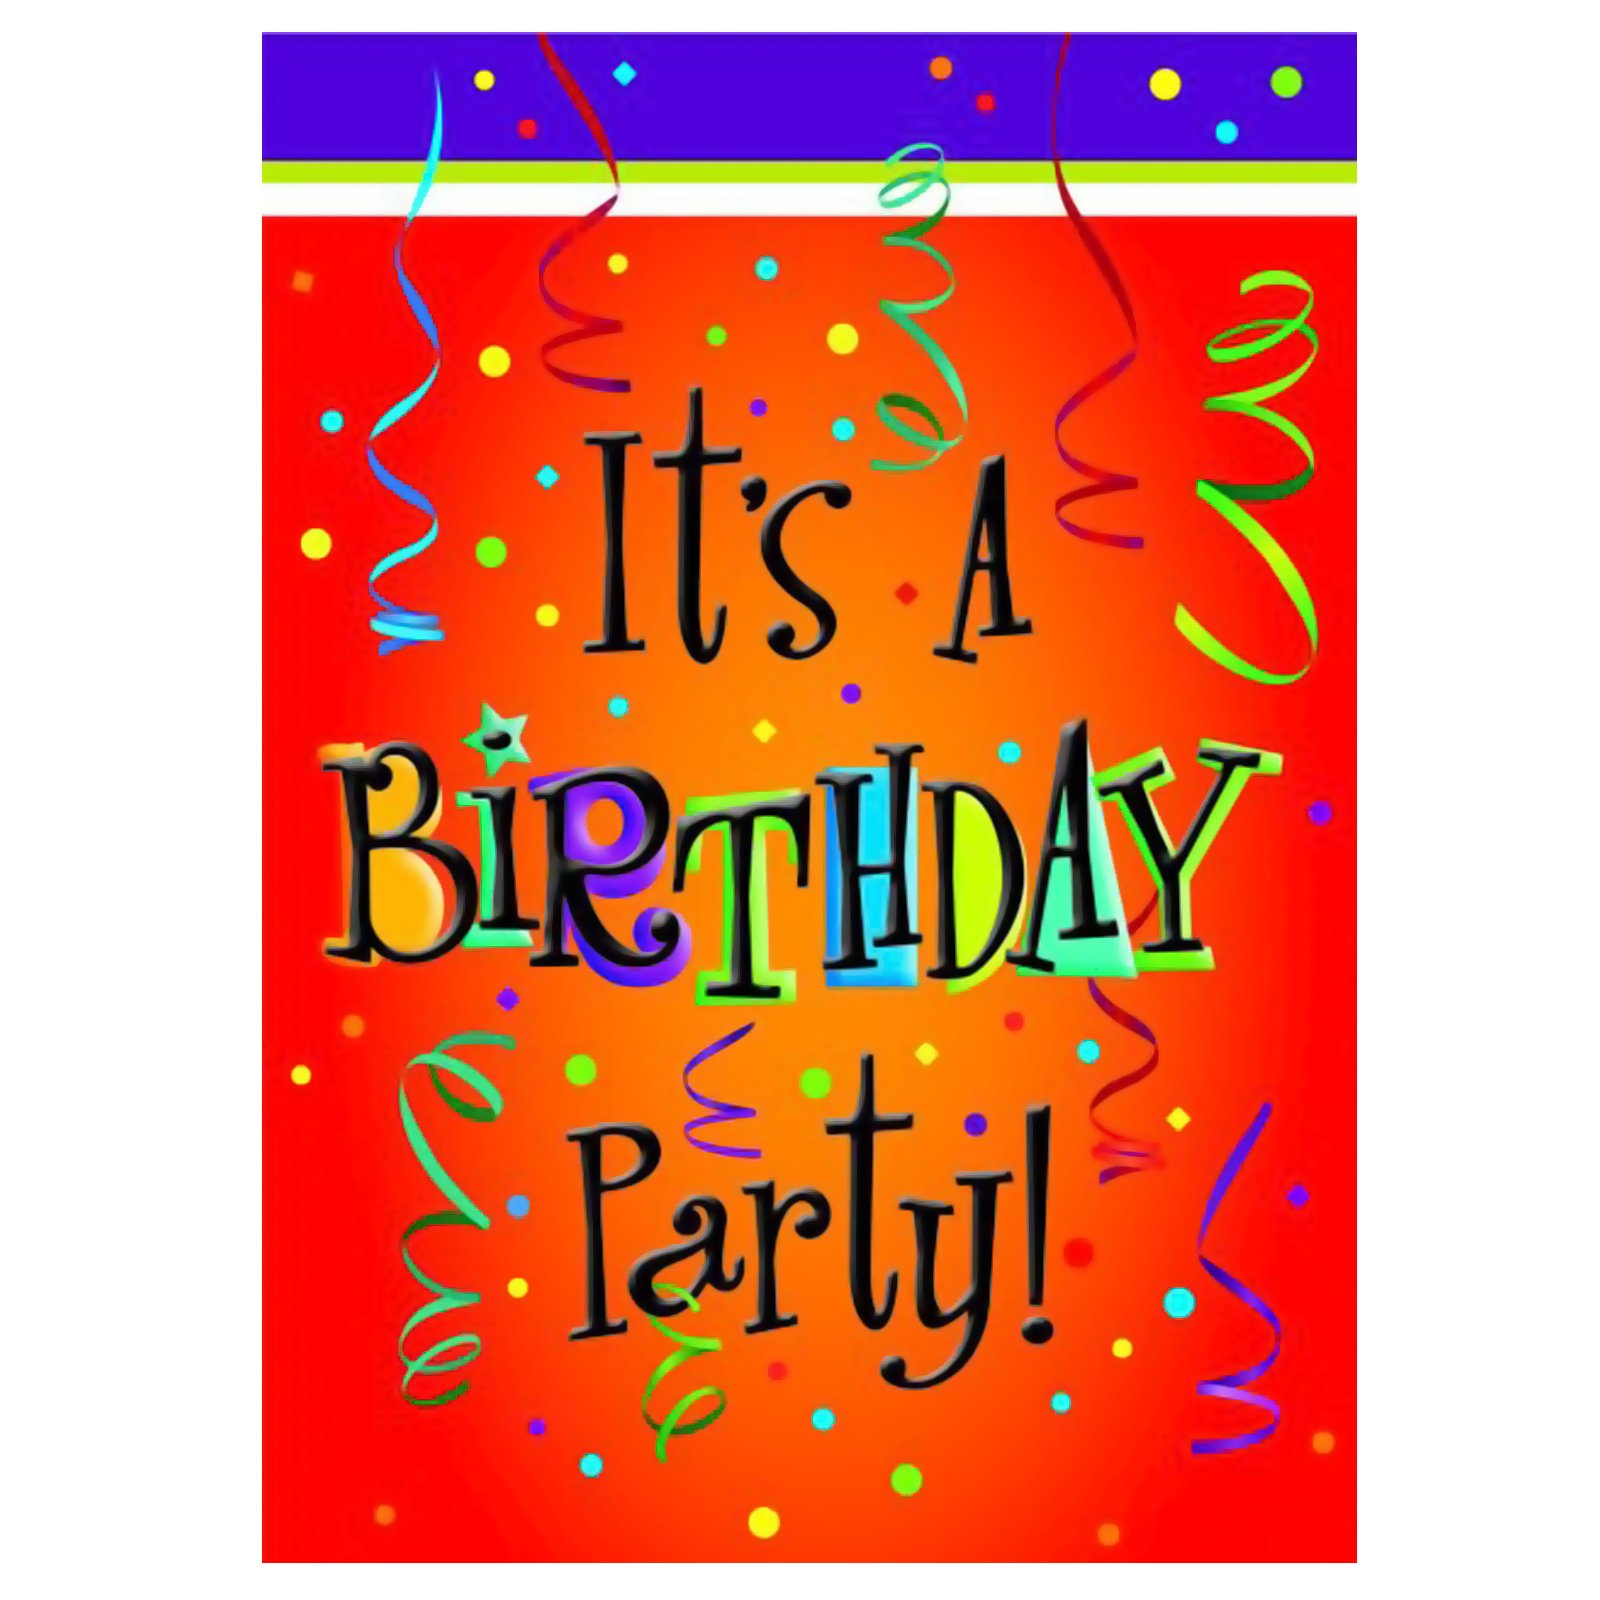 Lively Birthday Invitations (8 count)